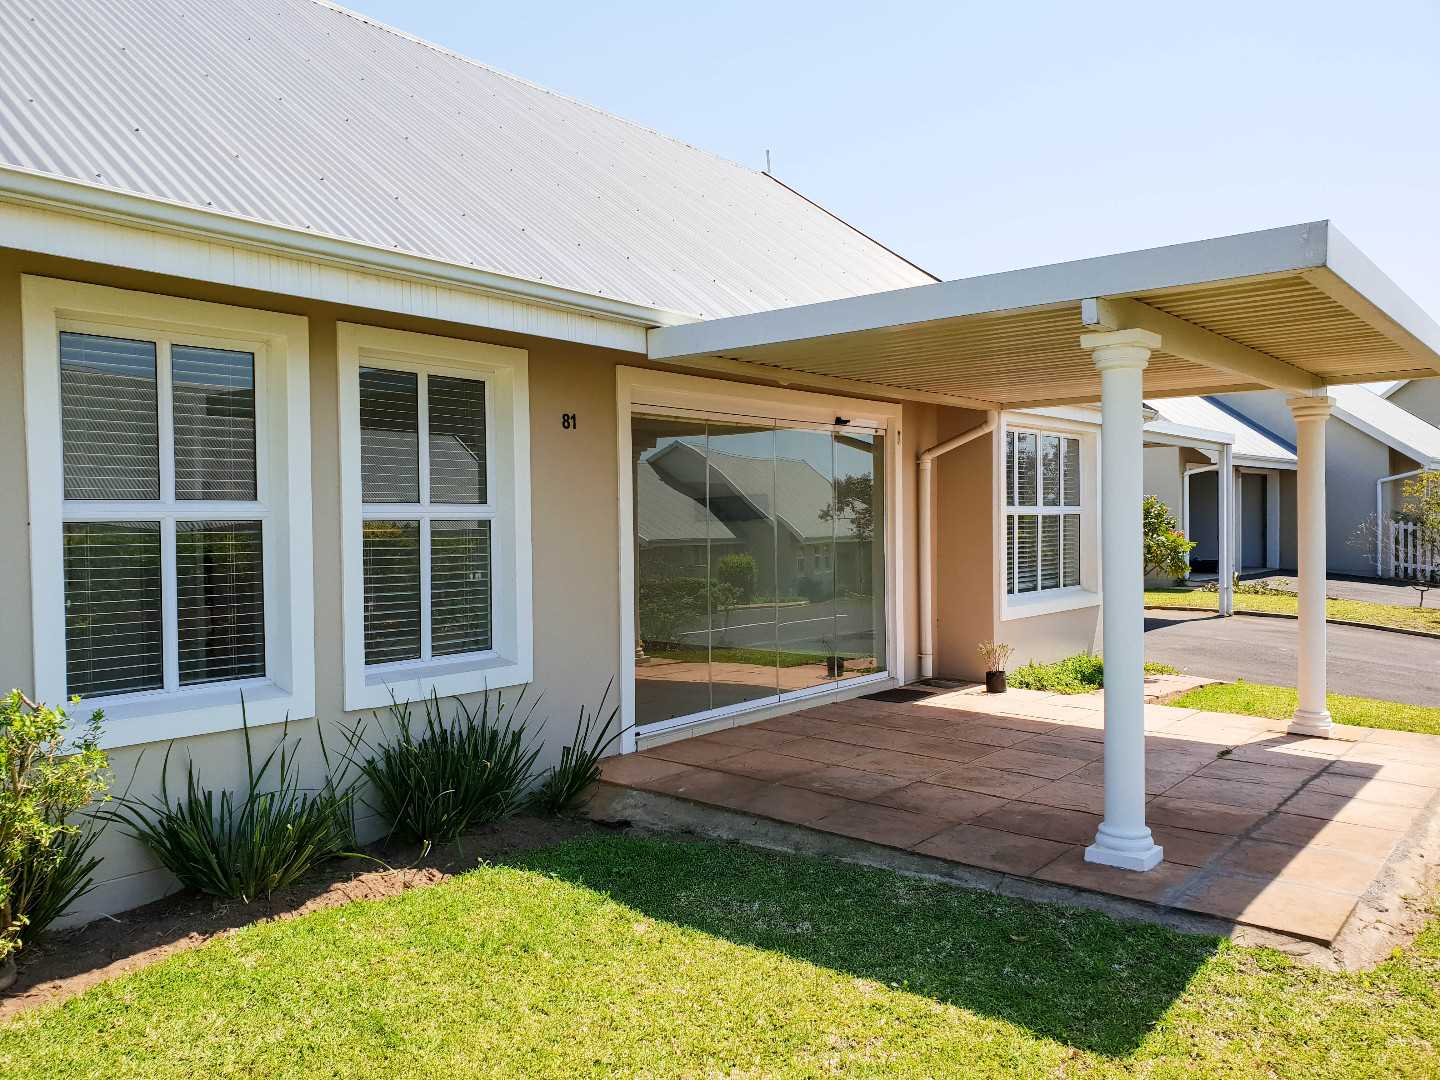 3 Bedroom Townhouse for sale in Ballito